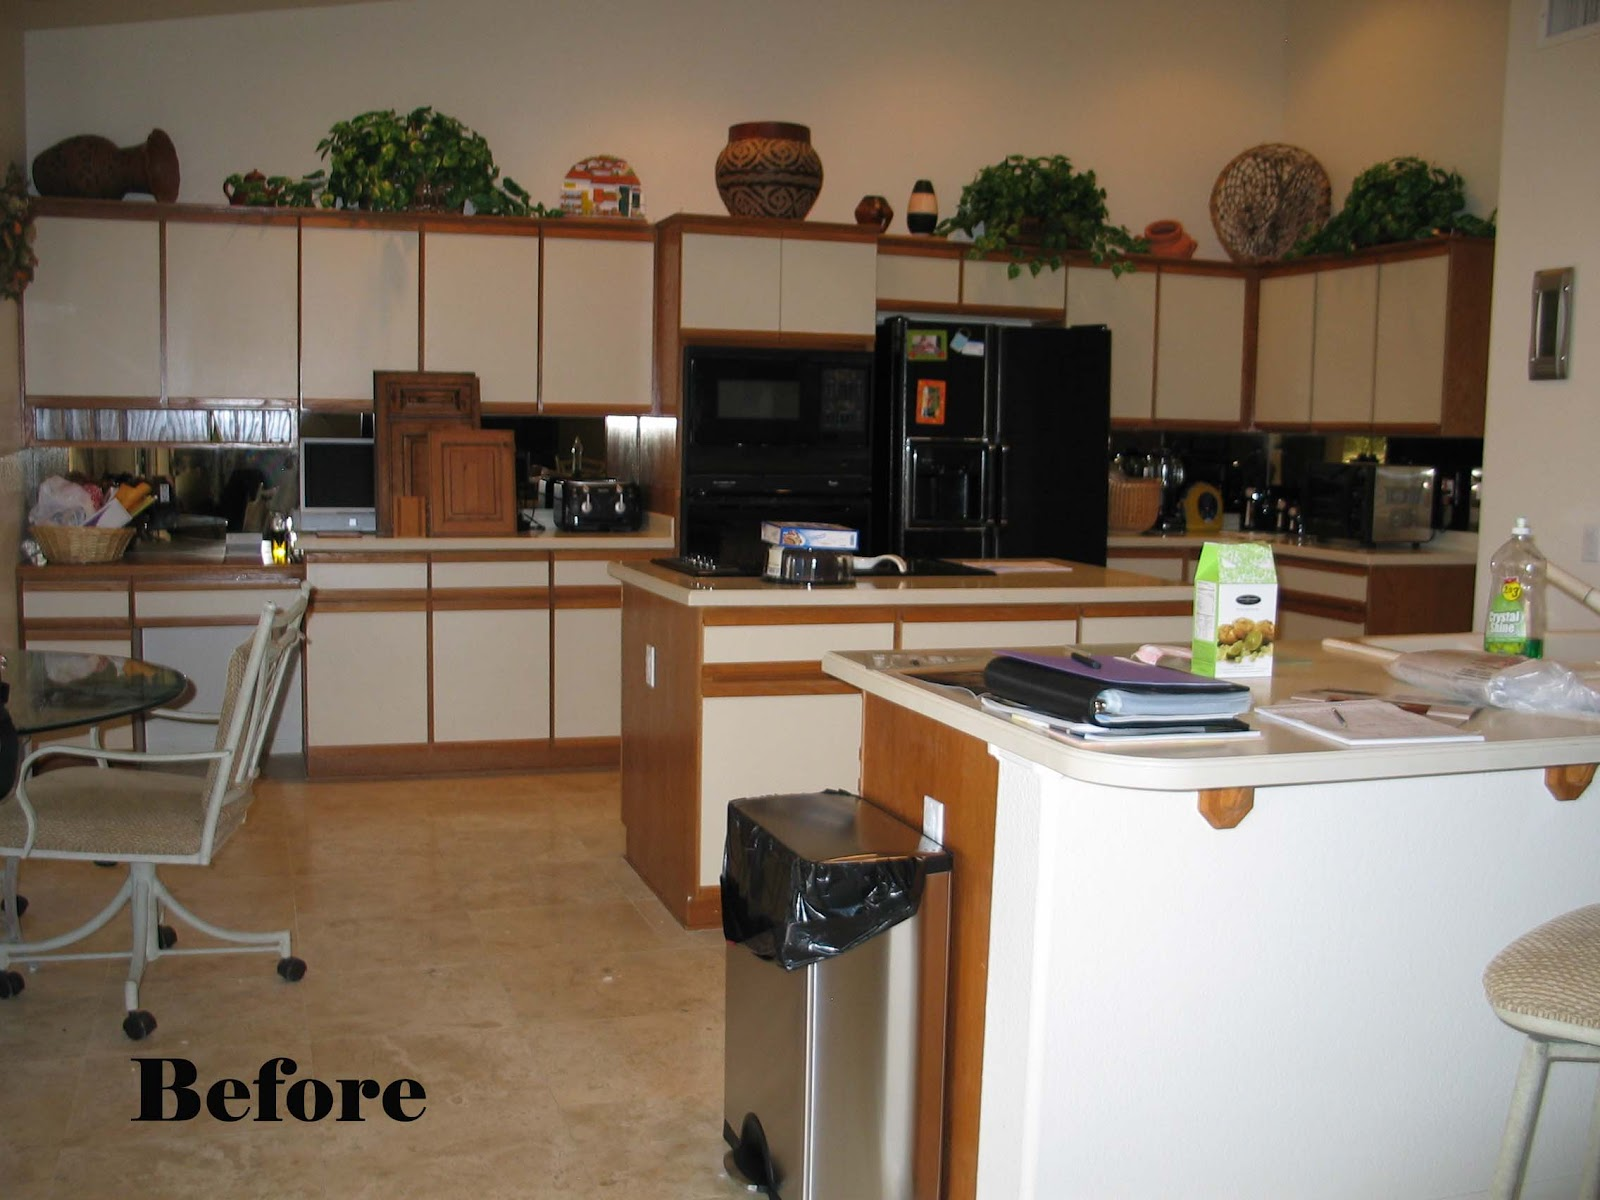 cabinet refacing easy and quick kitchen makeover option cabinets reface kitchen cabinets Cabinet Refacing Easy And Quick Kitchen